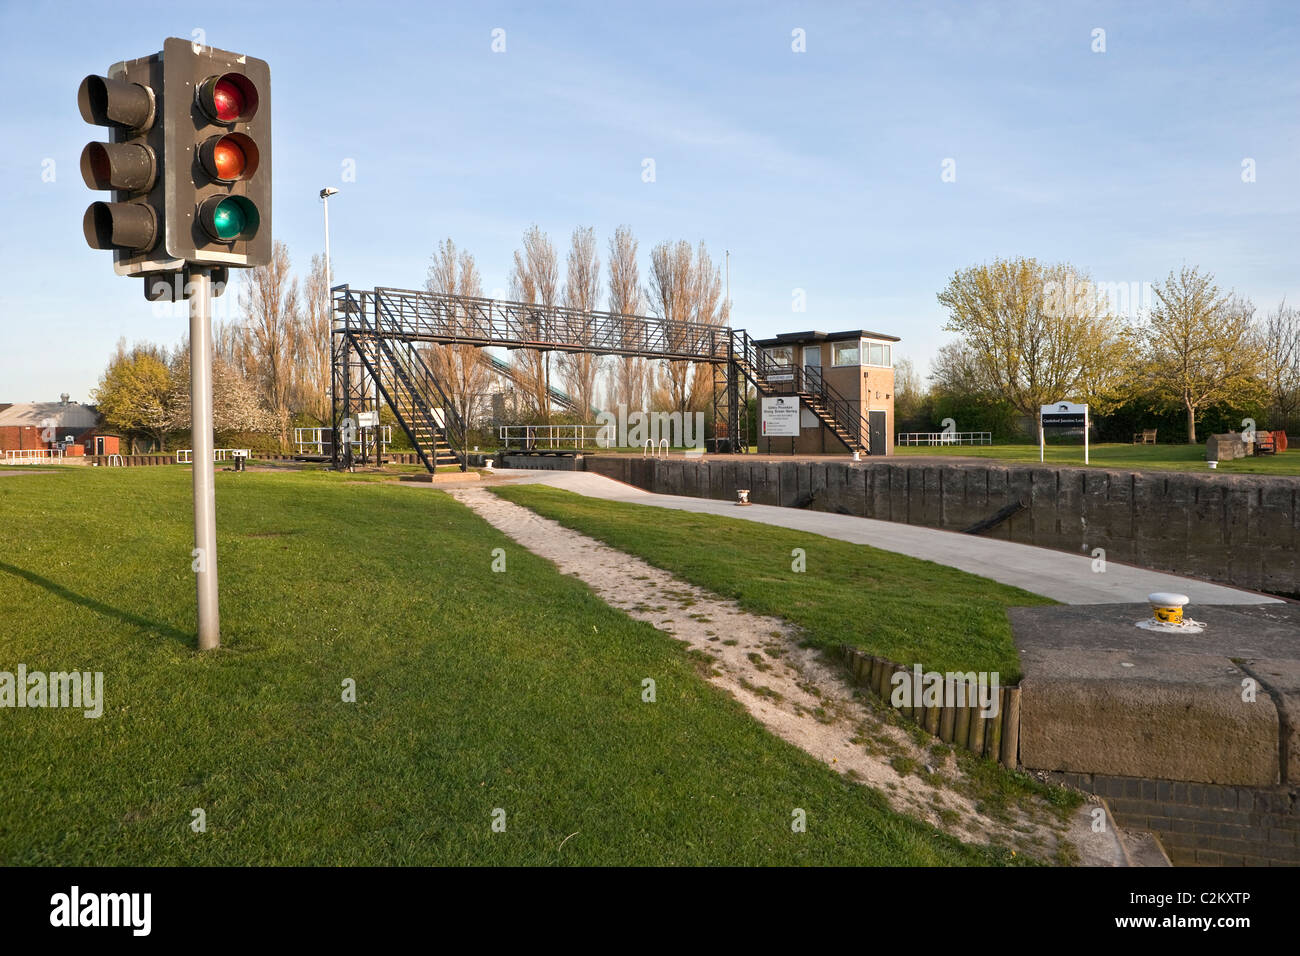 Castleford Lock on the Aire & Calder Navigation looking towards Goole showing traffic lights system. - Stock Image